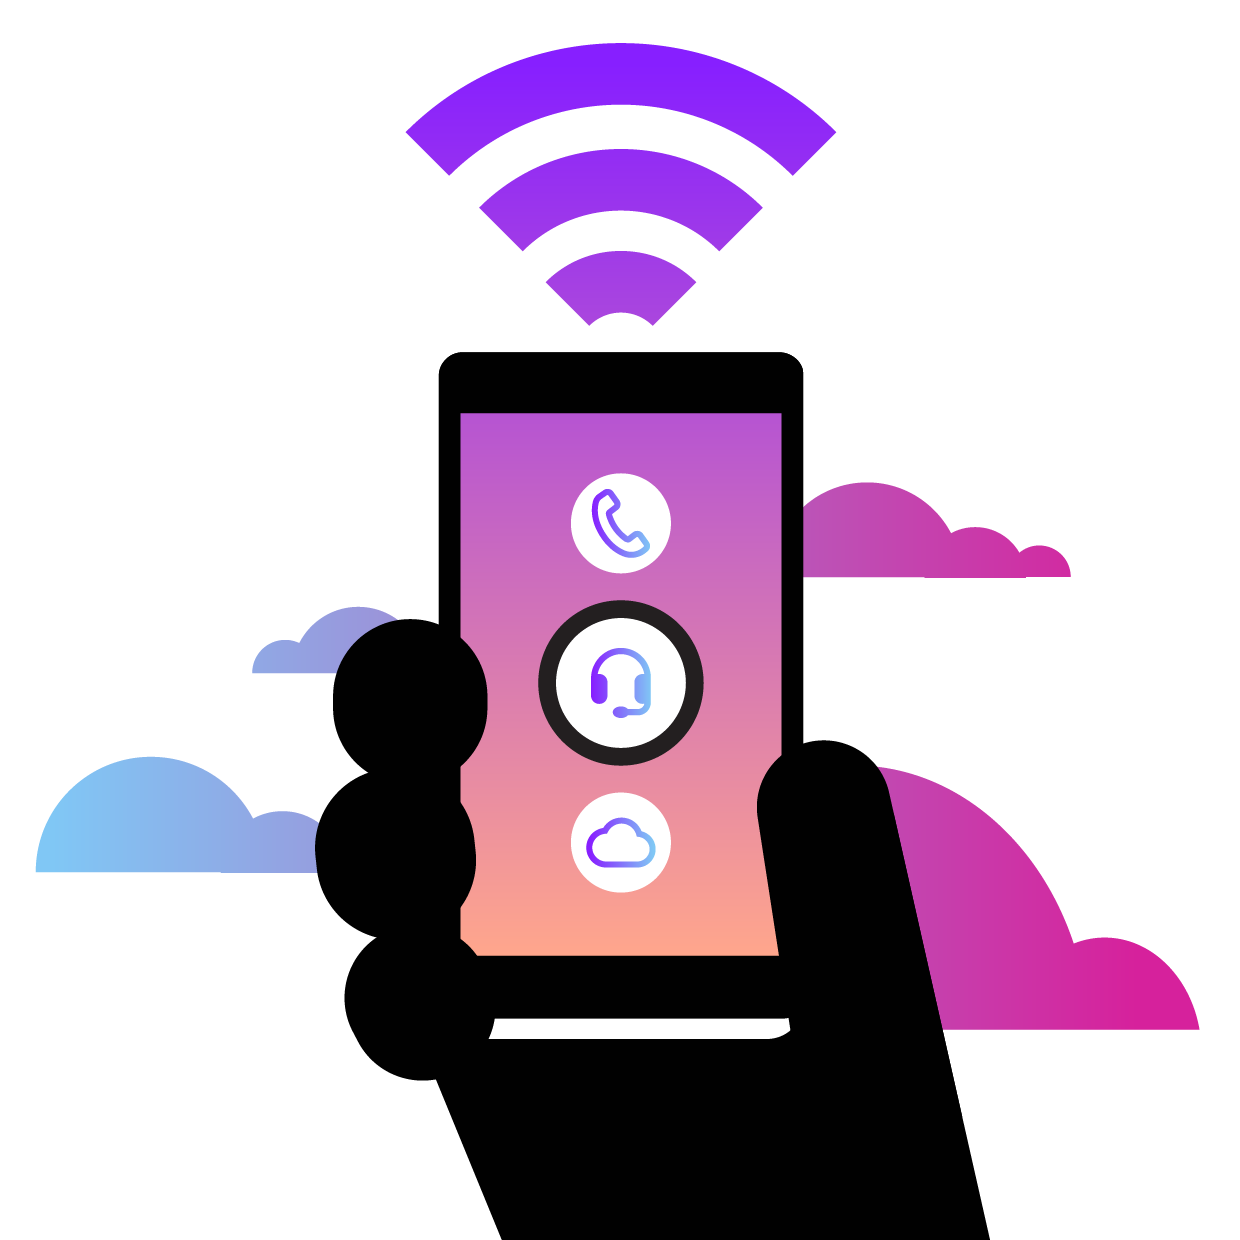 illustration of person holding smartphone, with three icons on it